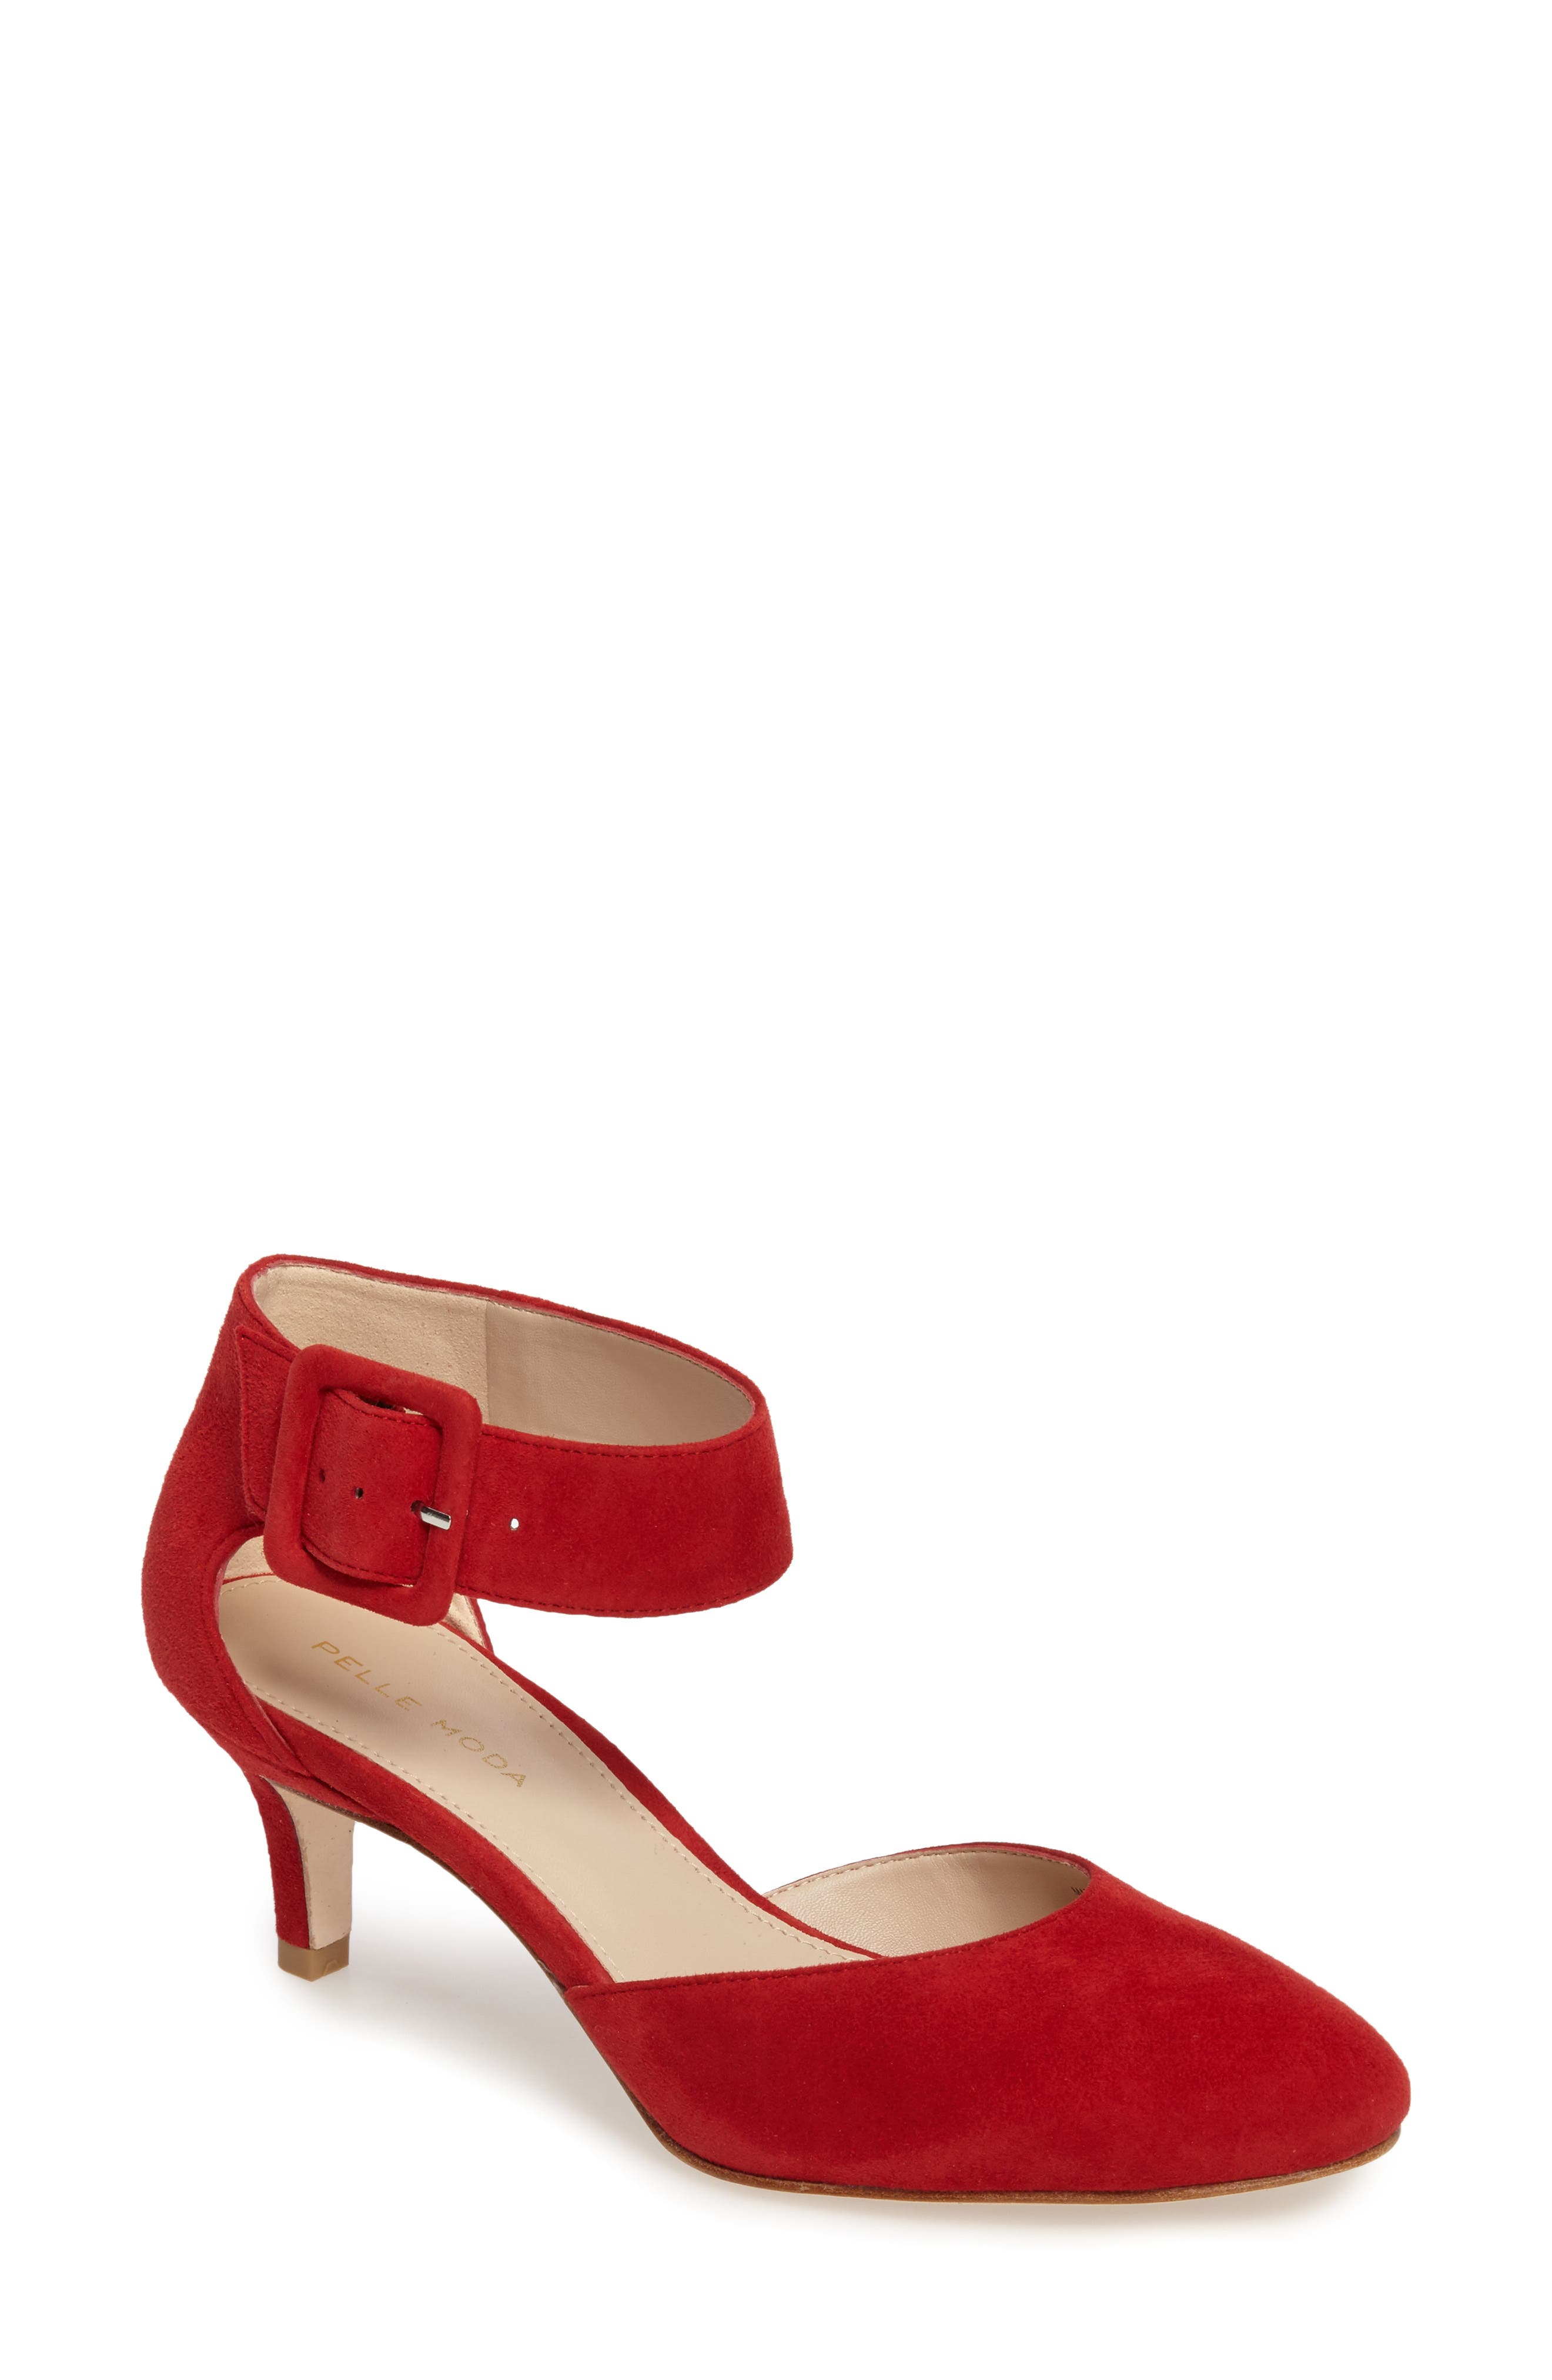 Pelle Moda Ankle Strap Pump (Women)